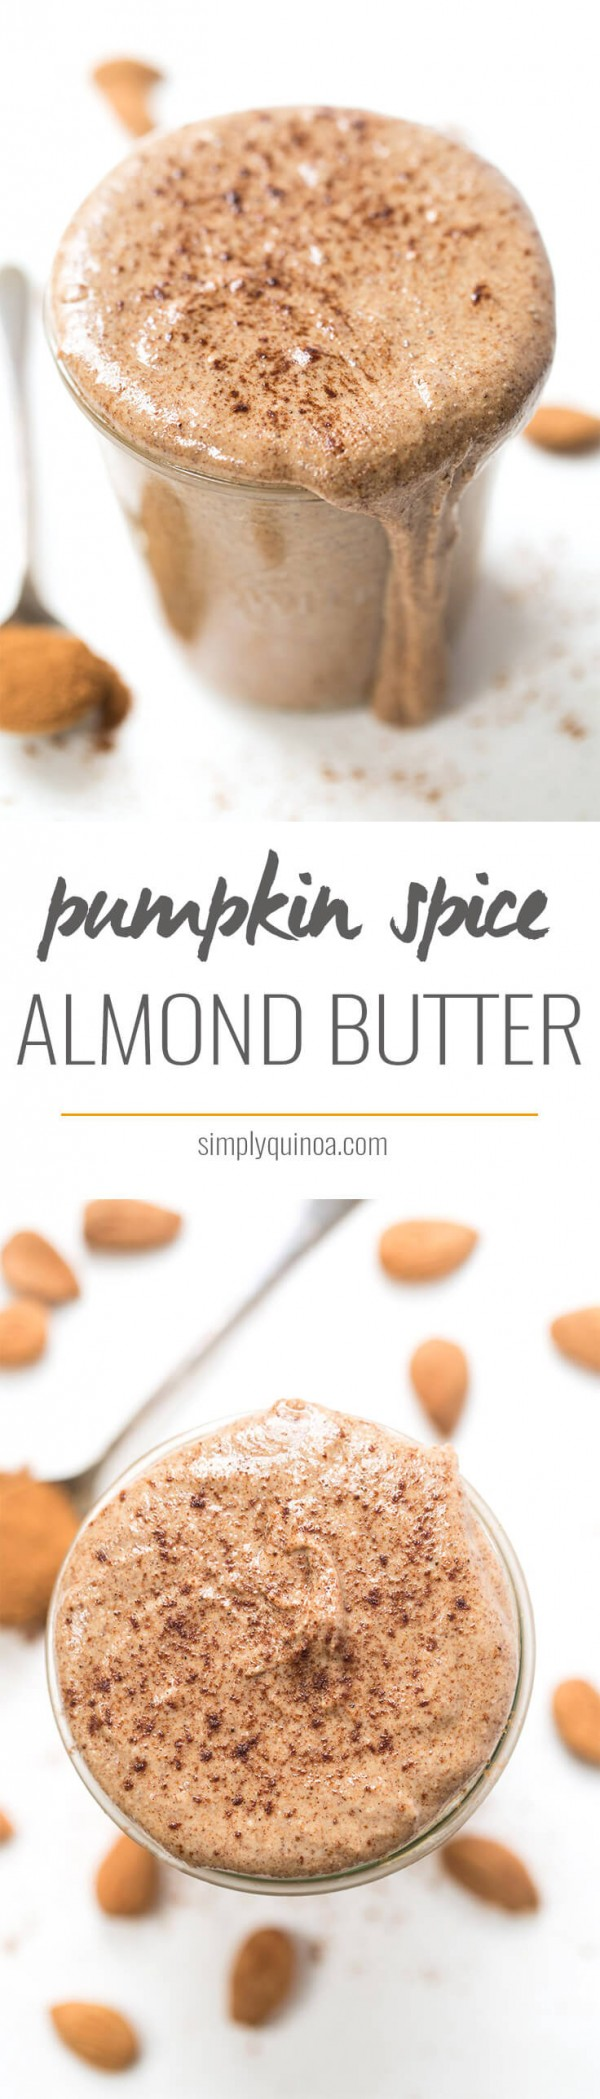 PUMPKIN SPICE ALMOND BUTTER -- love this fall spin on my fave nut butter of all time! This would be so good on toast with a little pumpkin butter on top!